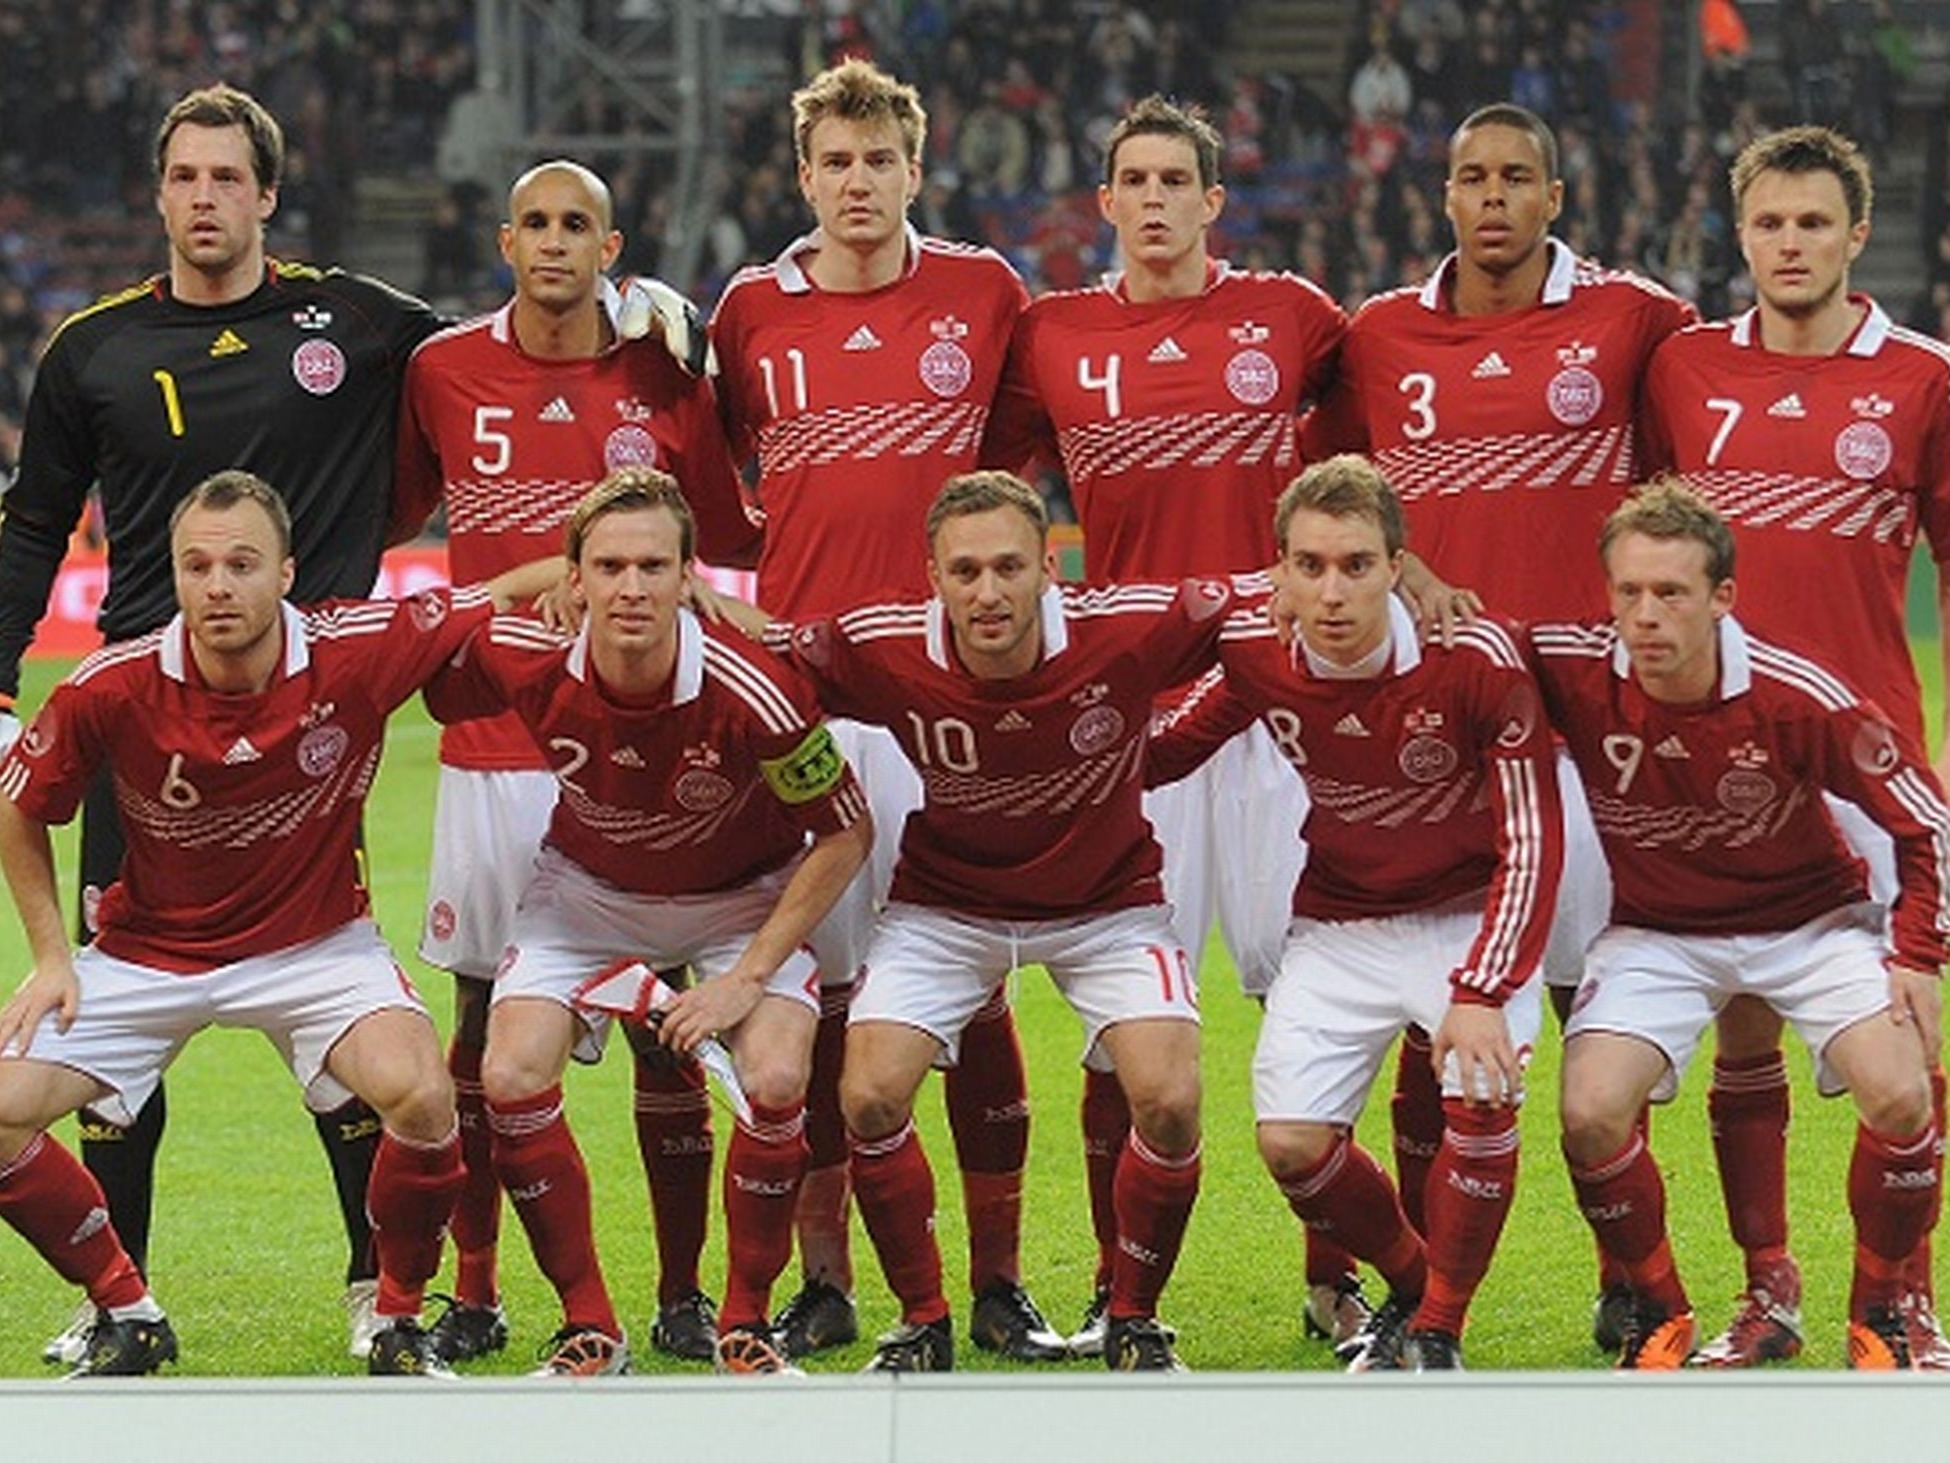 The Denmark national football team (Danish: Danmarks fodboldlandshold) represents Denmark in association football and is controlled by the Danish Football Association (DBU), the governing body for the football clubs which are organized under DBU. Denmark's home ground is Parken Stadium in the Østerbro district of Copenhagen, and their head coach is Åge Hareide.